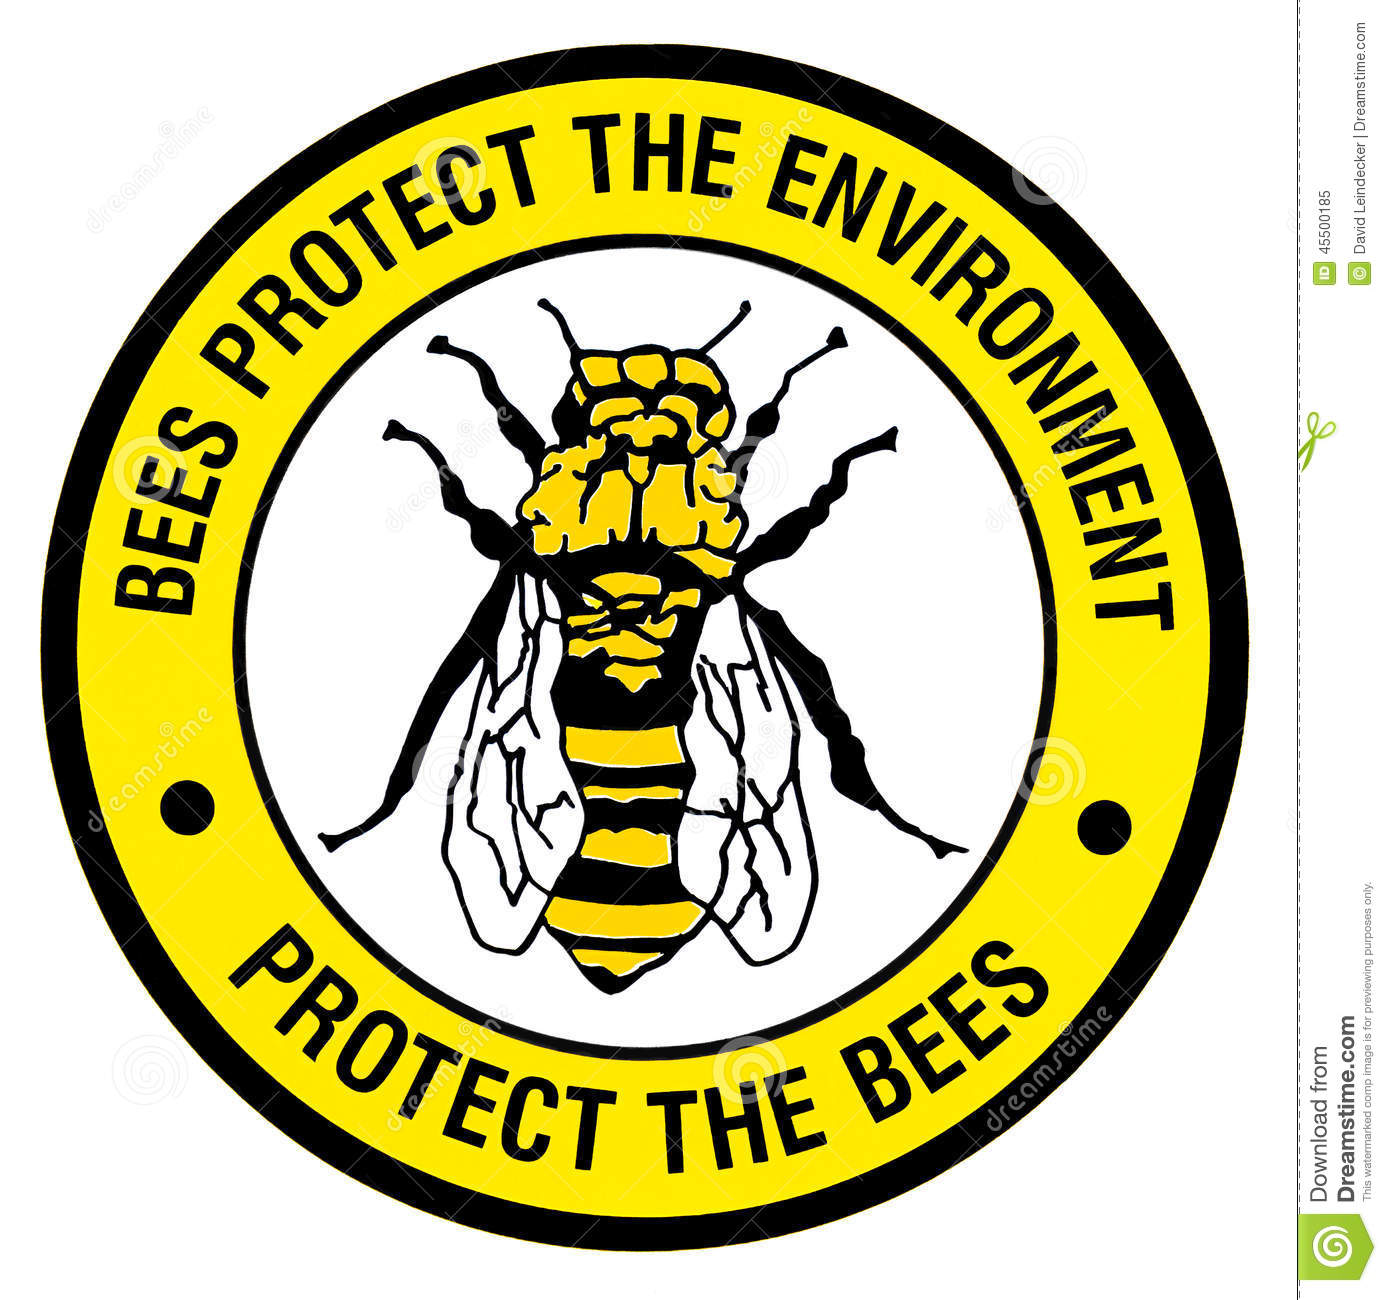 Sign - Protect the bees stock illustration. Image of icon